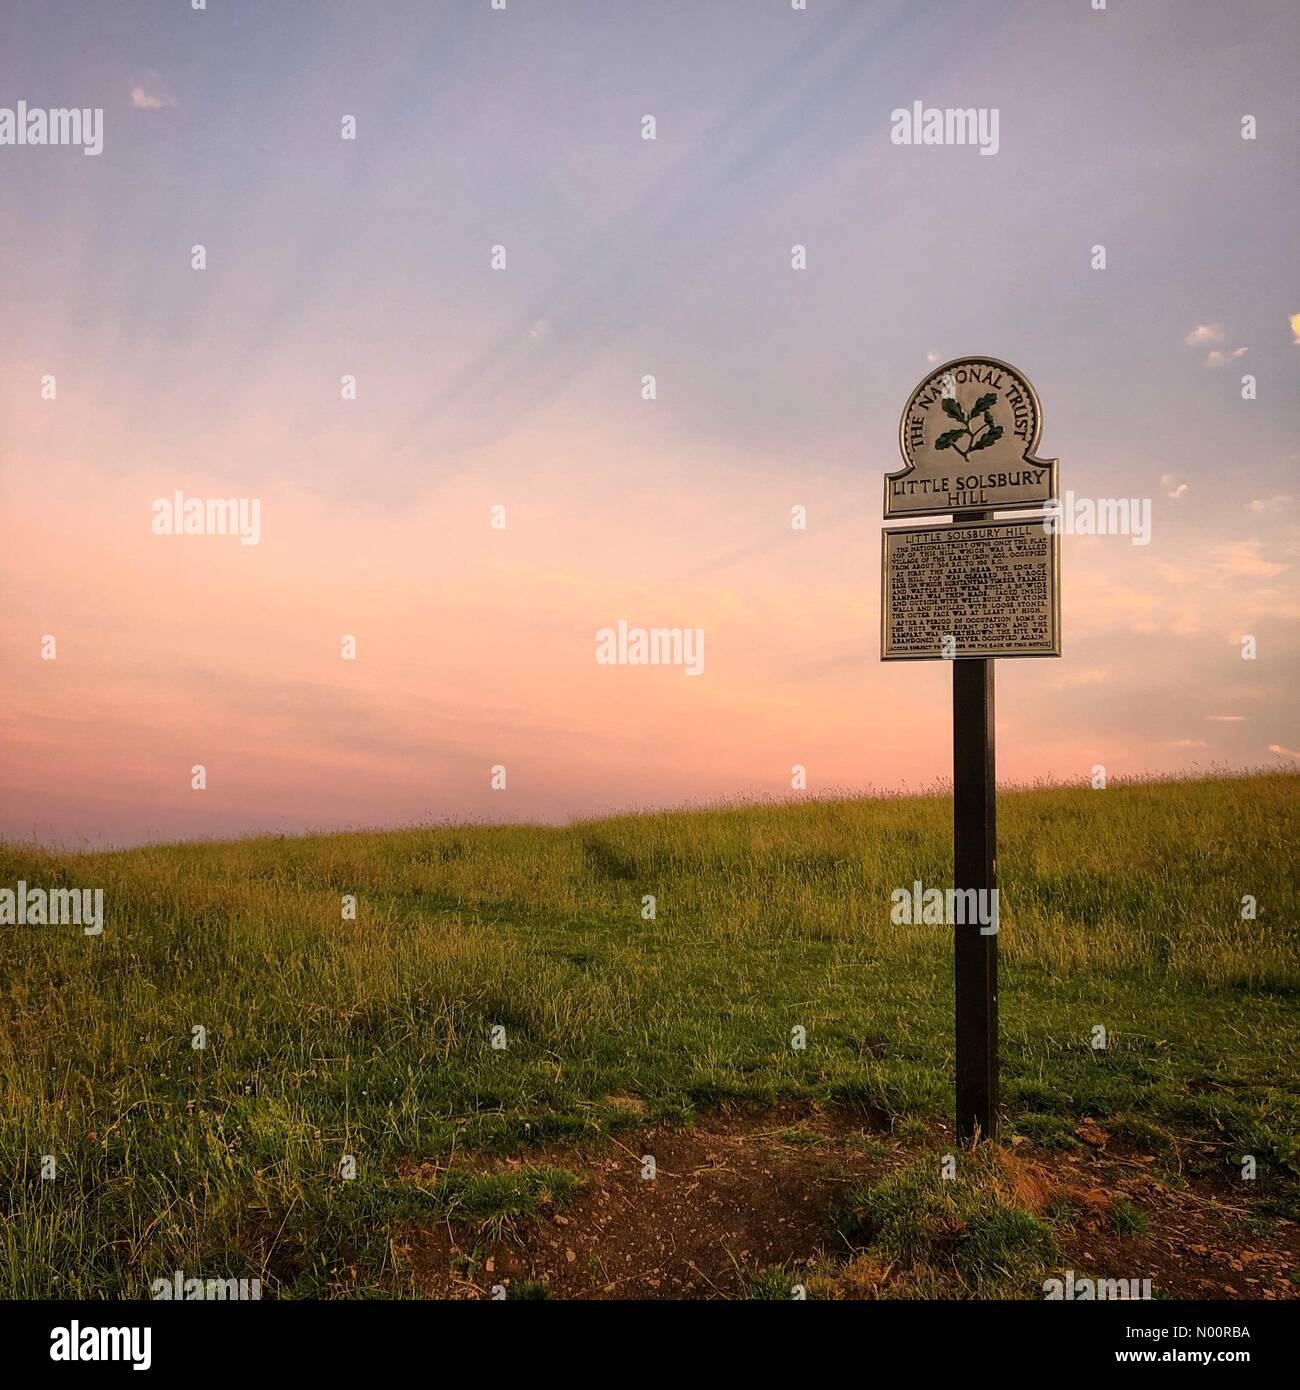 Batheaston, Bath, UK. 21st June, 2018. Waiting for the Solstice sunrise on top of Little Solsbury Hill near Bath in the UK Credit: Alex Stoneman & Billy-Jay Starling/StockimoNews/Alamy Live News Stock Photo